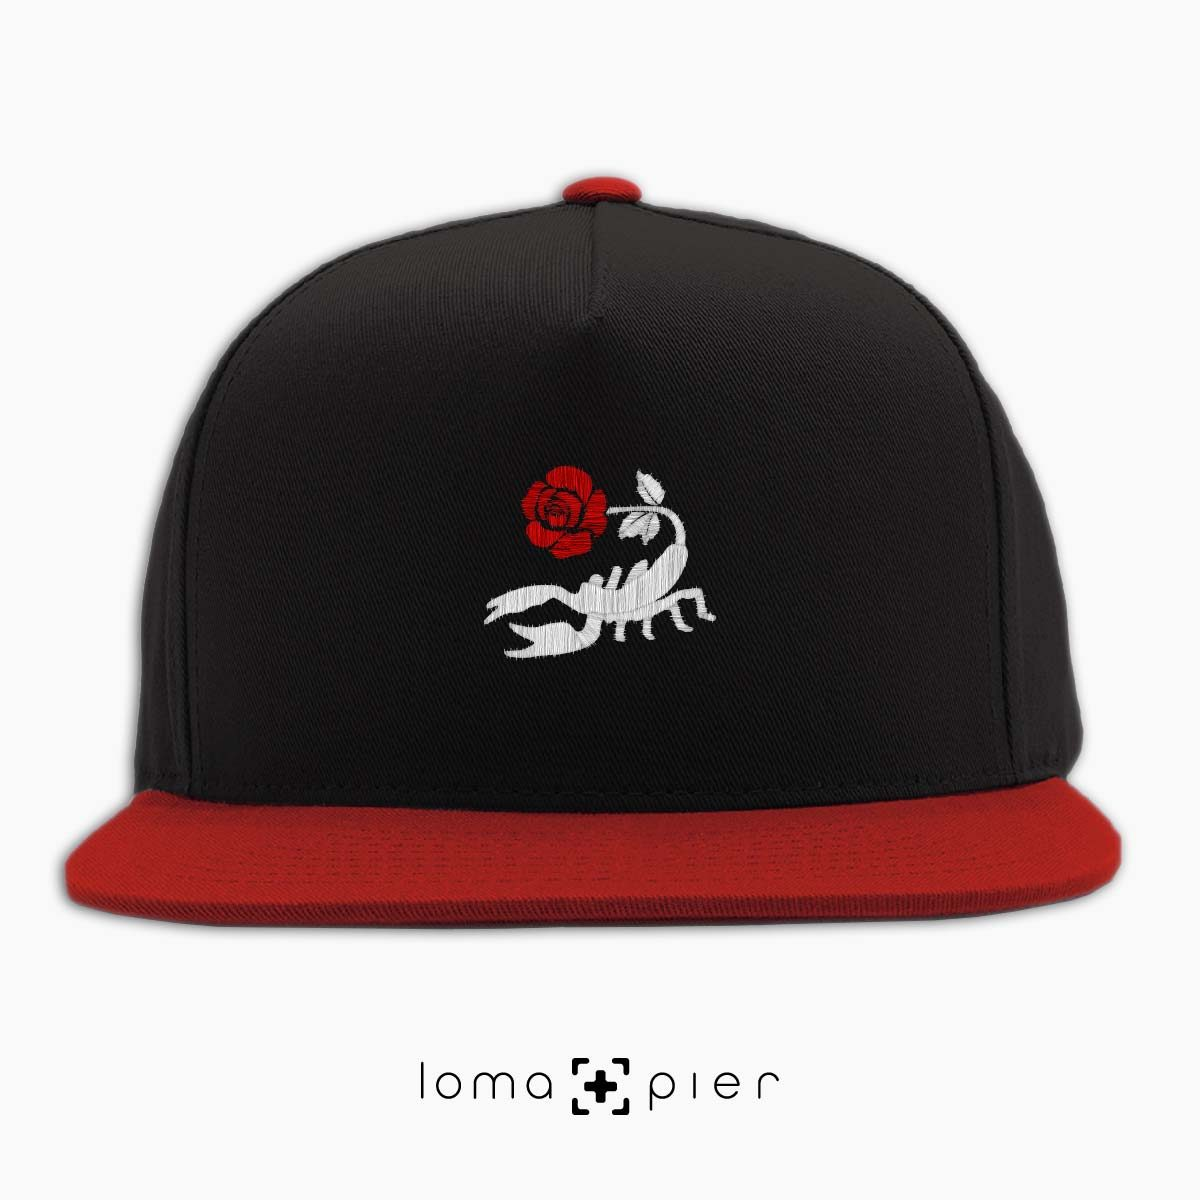 SCORPION ROSE icon embroidered on a black and red classic snapback hat with multicolor thread by loma+pier hat store